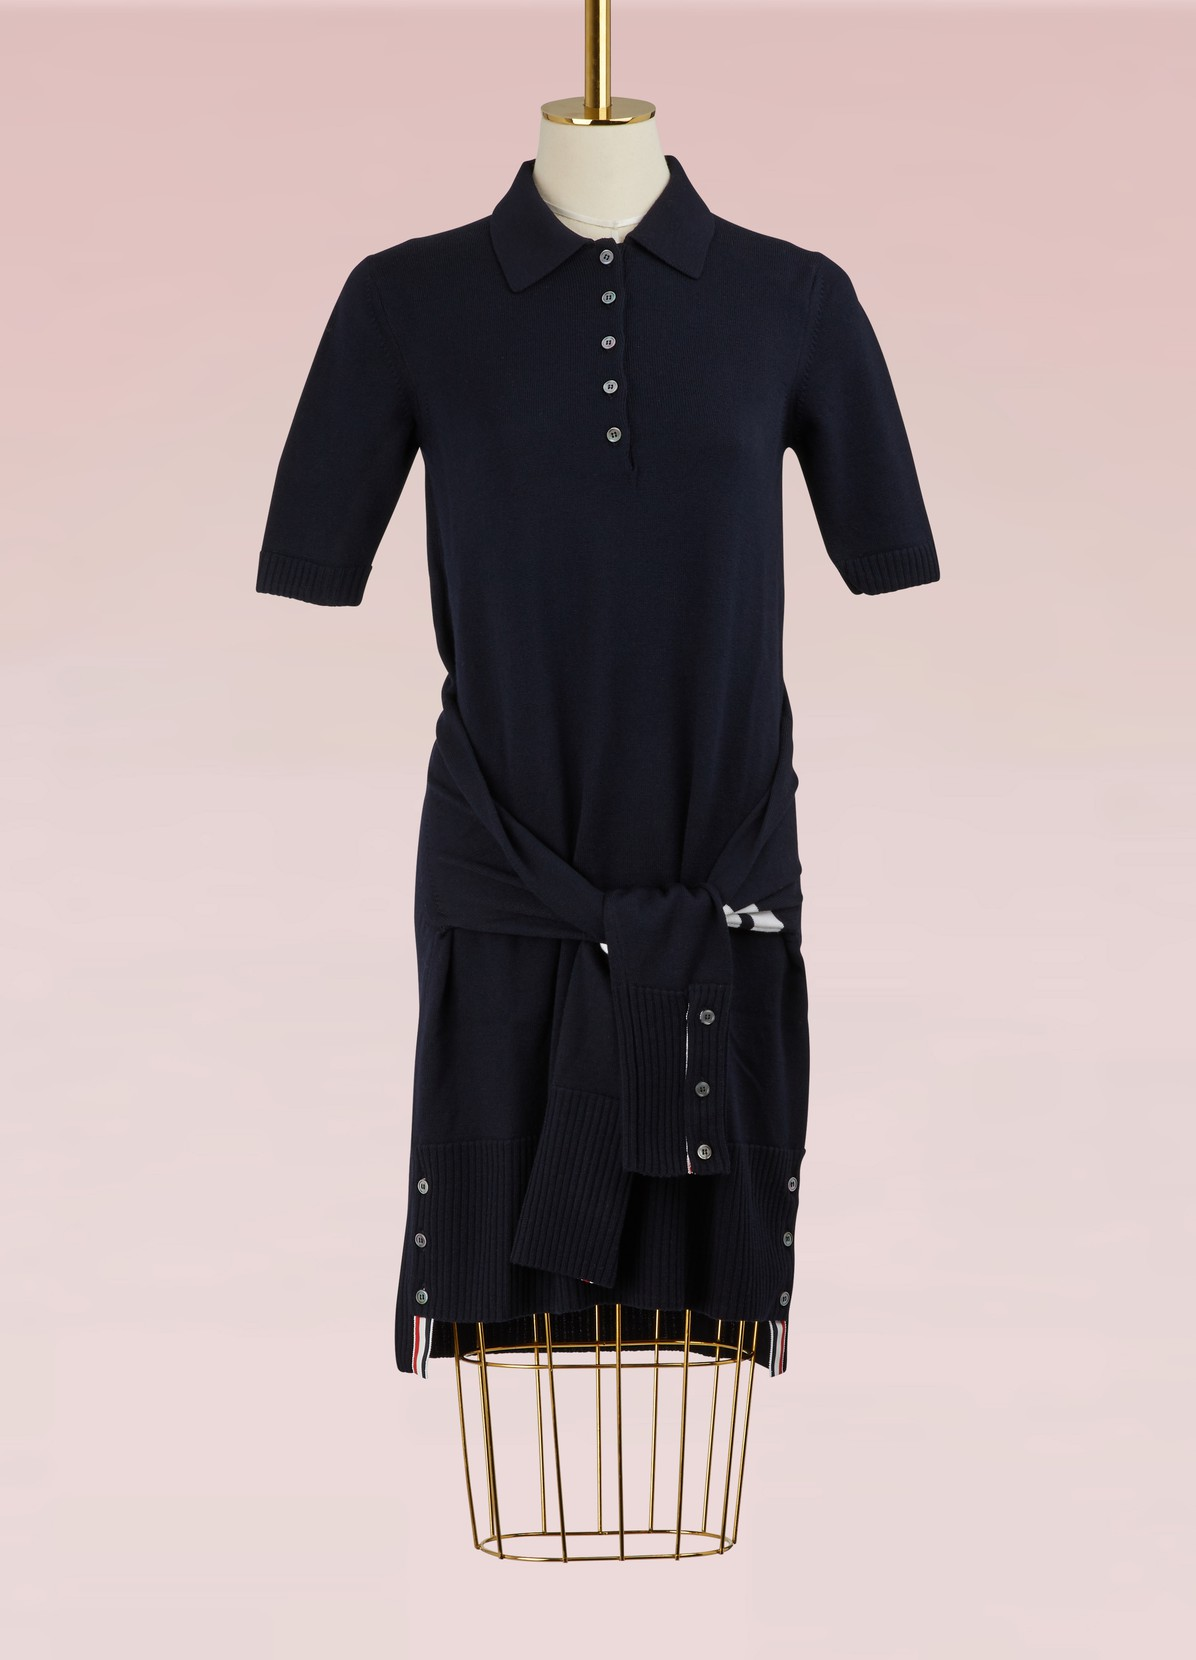 2 in 1 wool cardigan polo dress | THOM BROWNE | 24 Sèvres